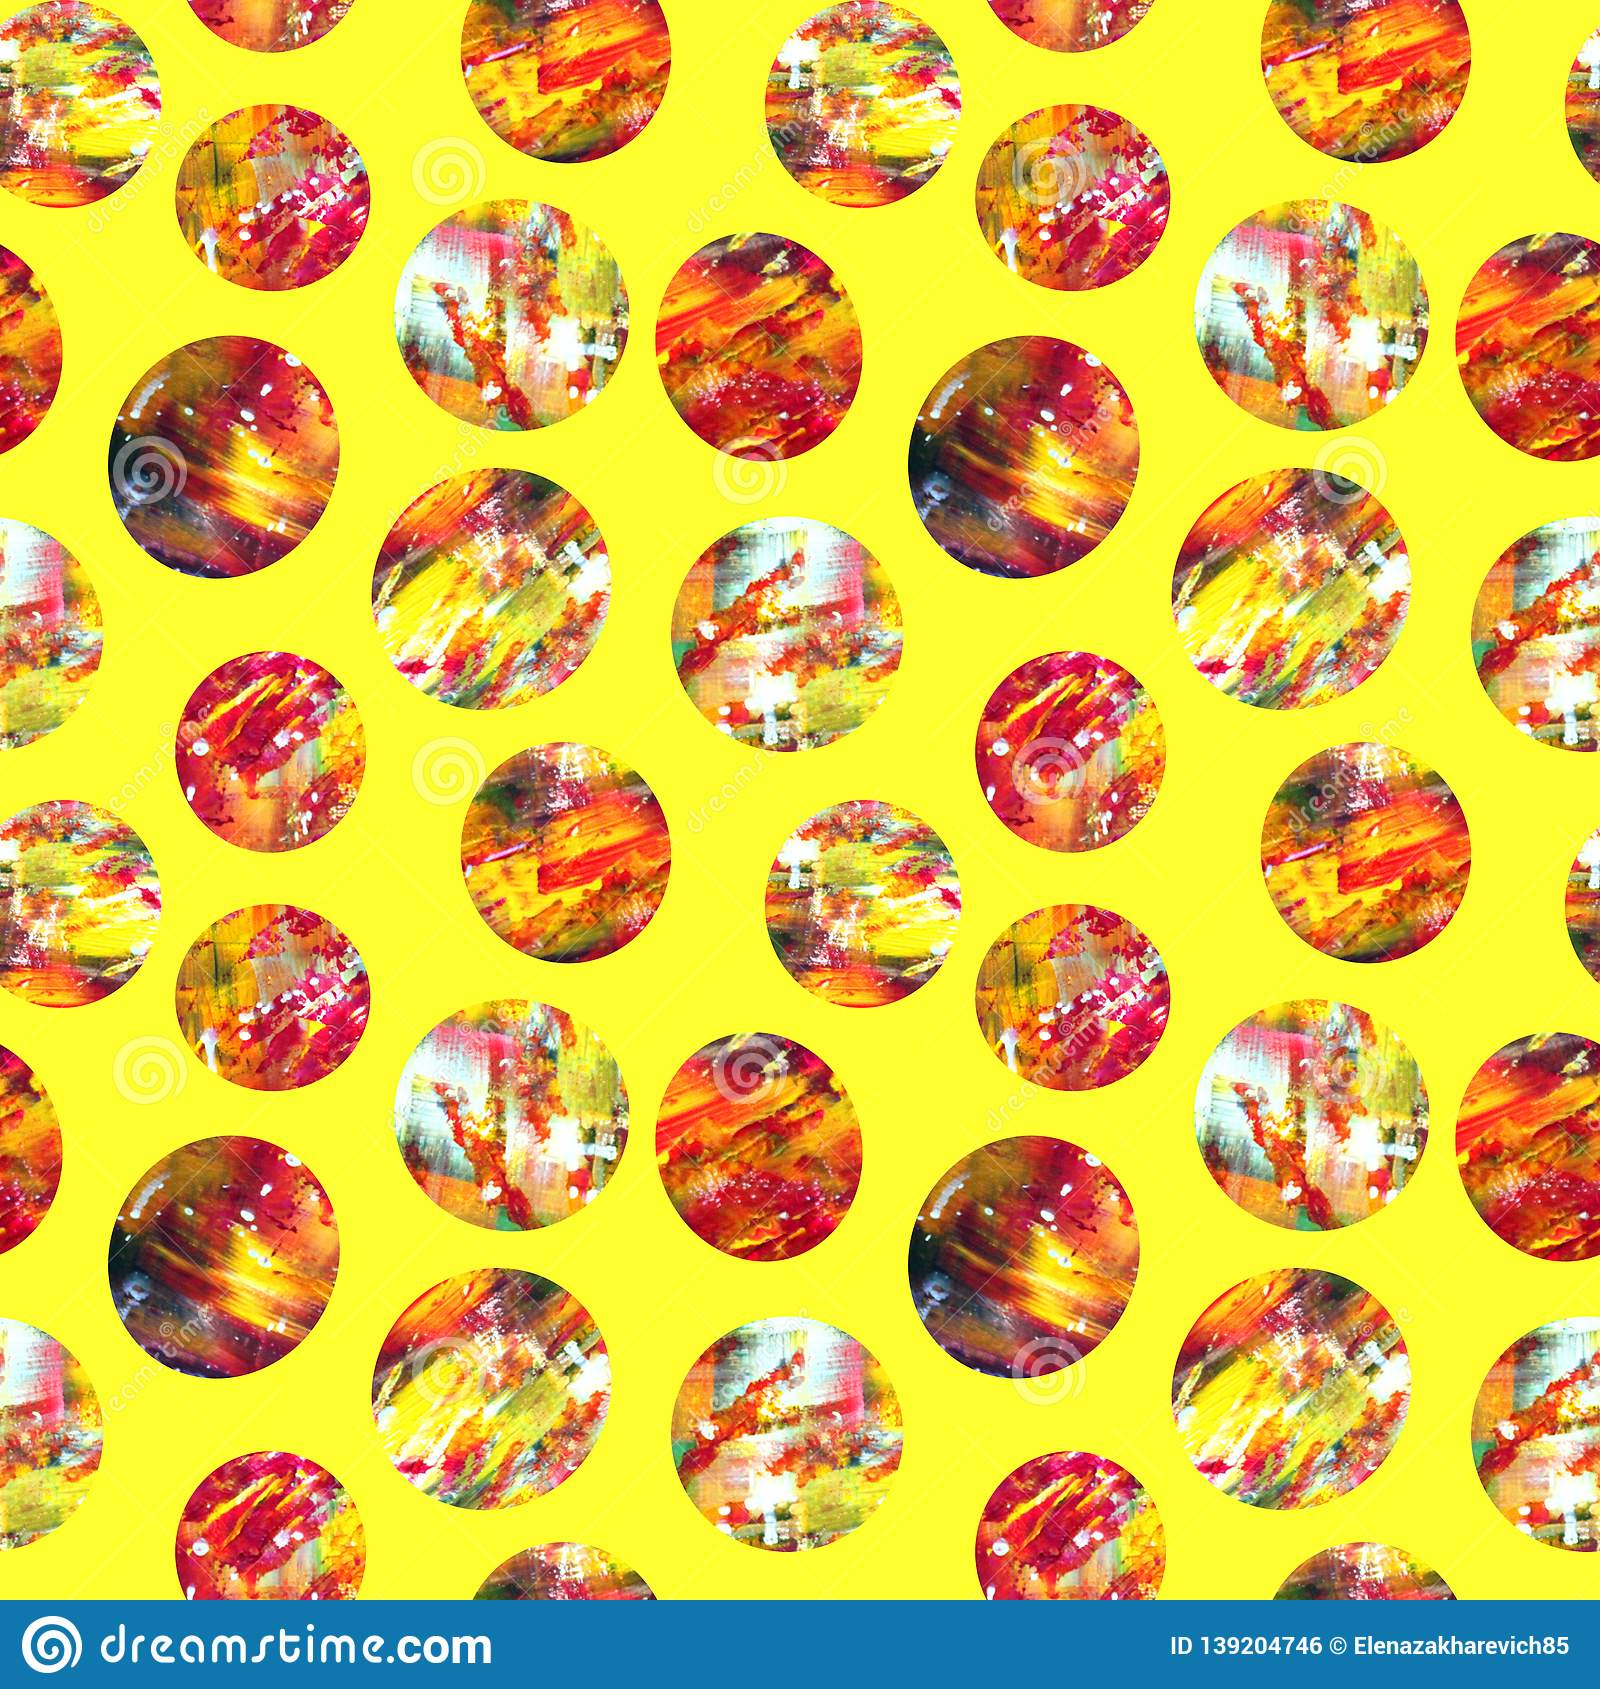 Bright abstract acrylic circles on a yellow background